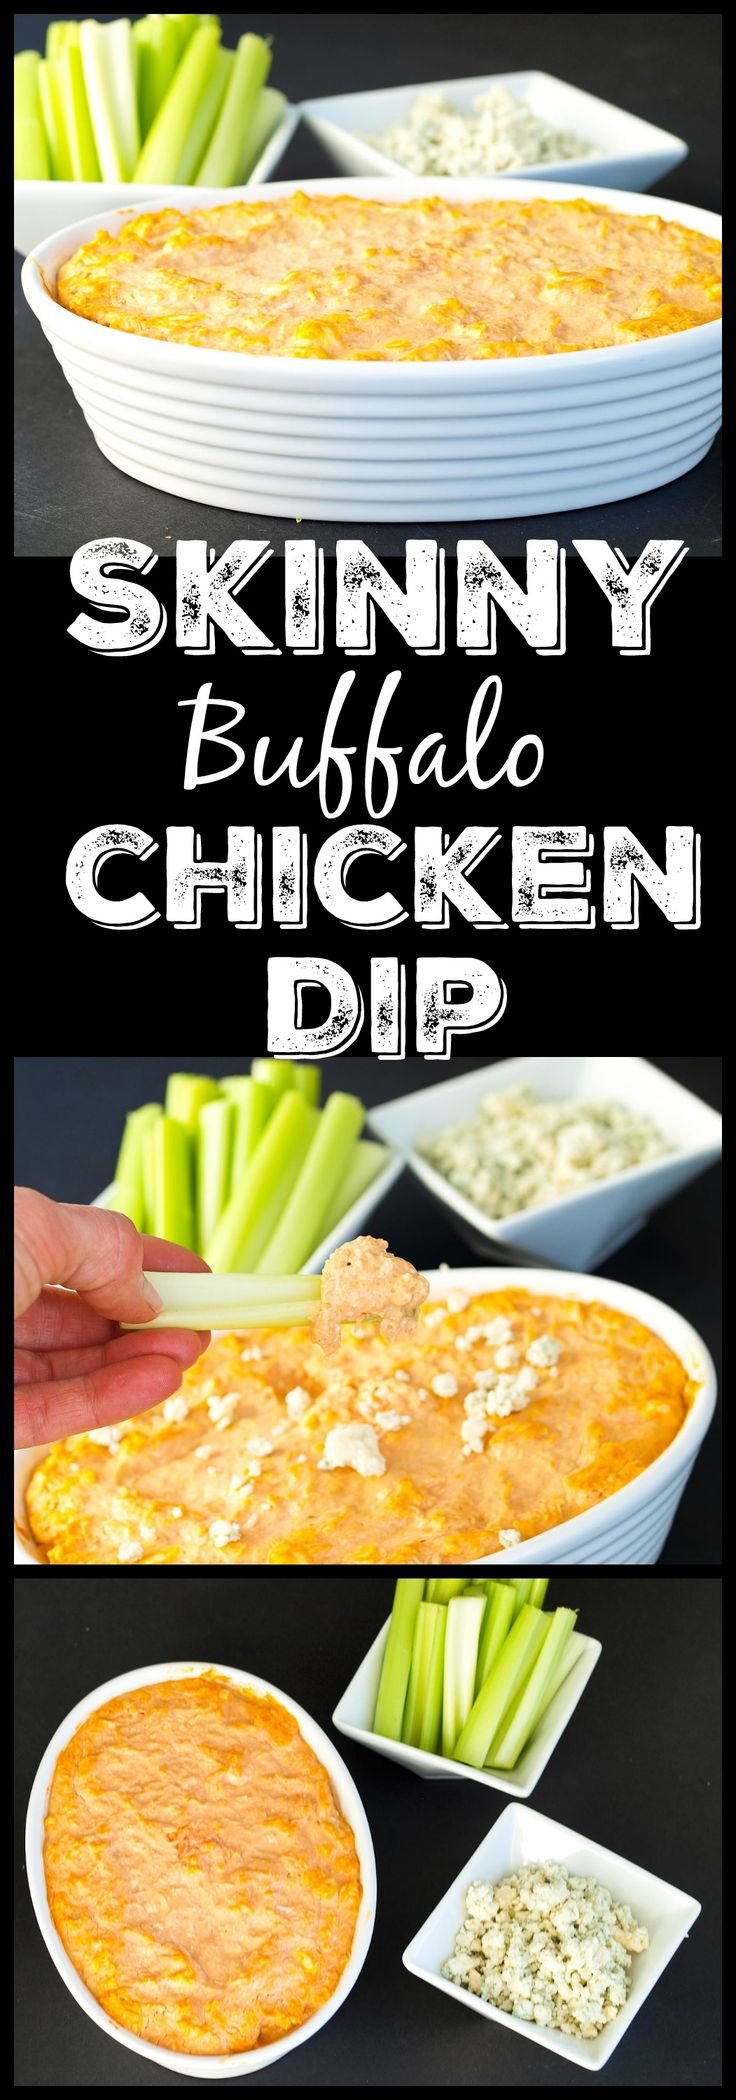 This Skinny Buffalo Chicken Dip is the perfect appetizer for your Super Bowl Party recipe line-up! No one will notice the missing calories or fat.